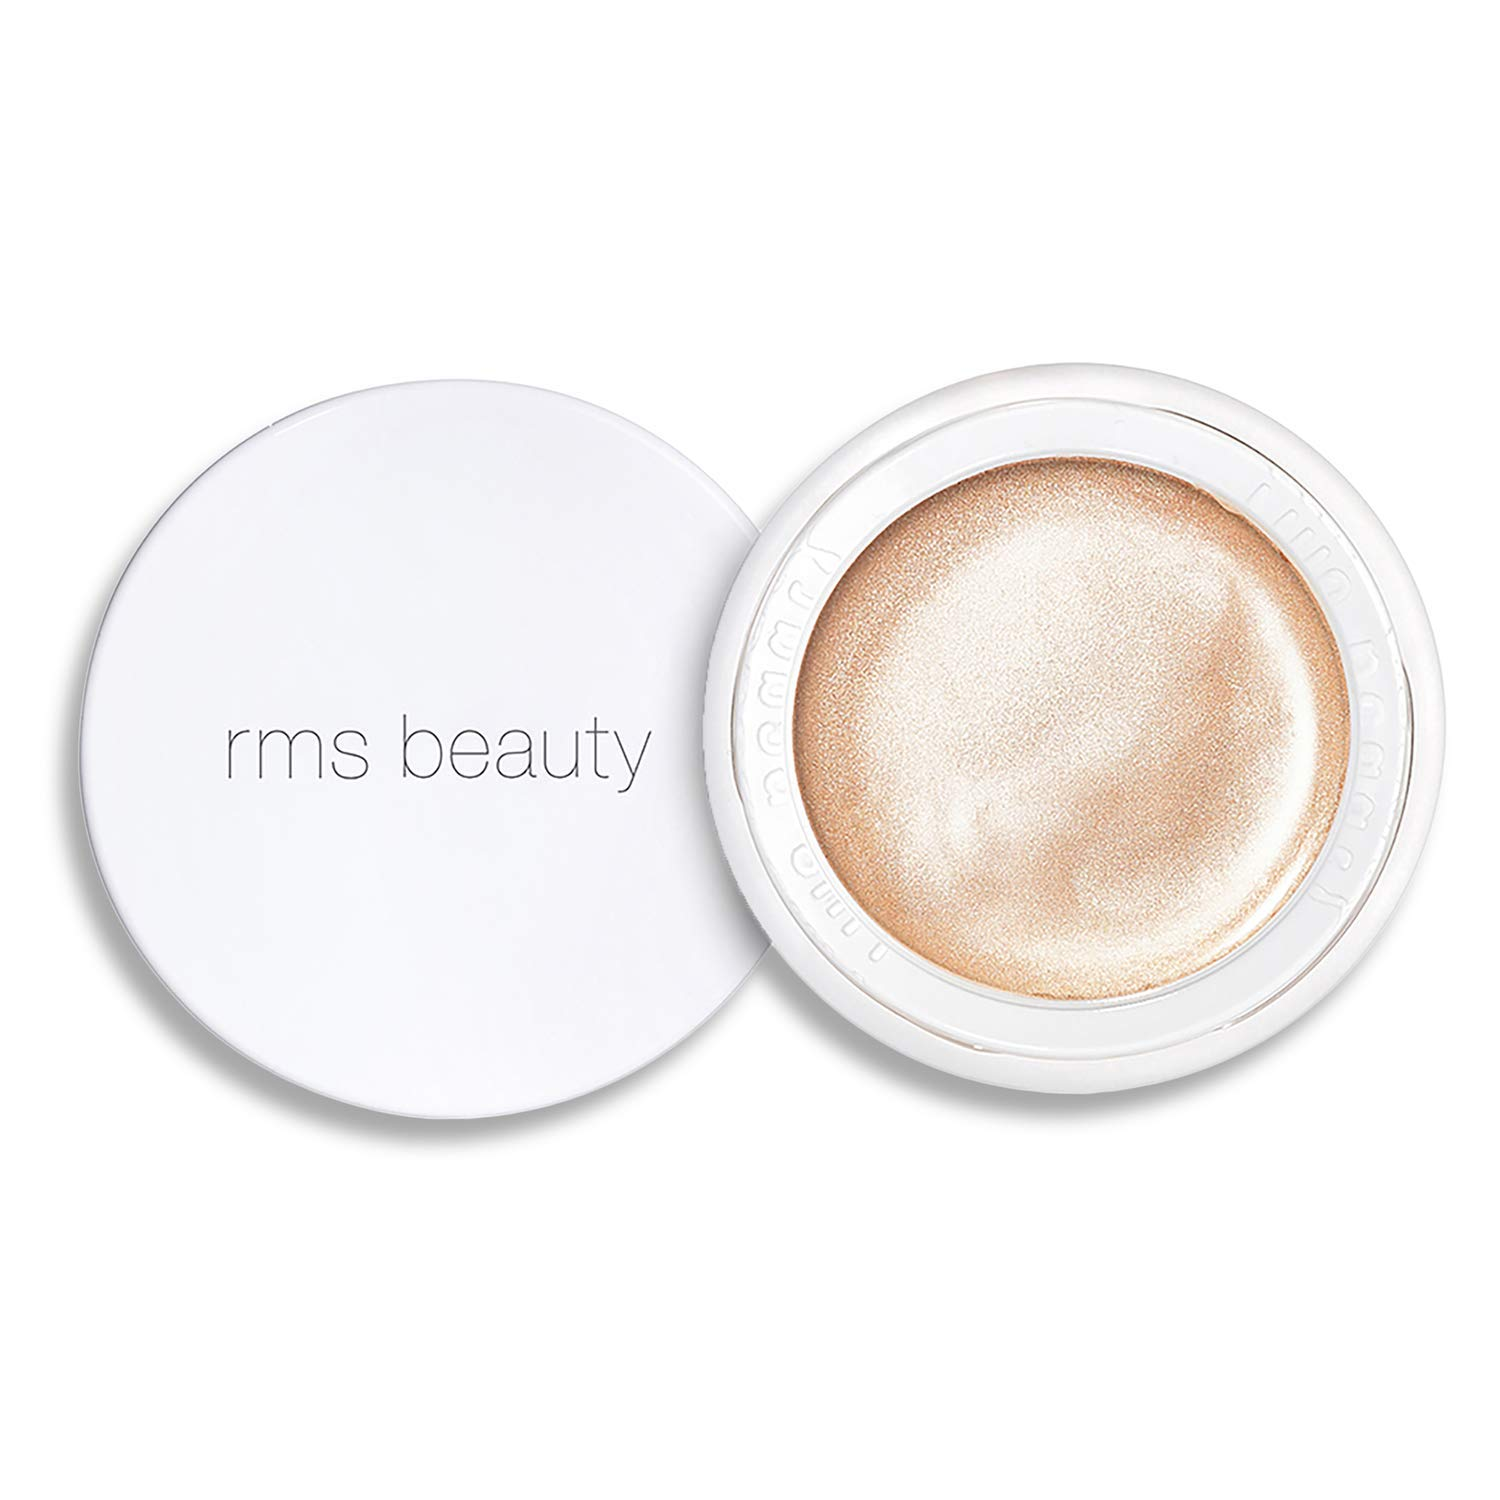 Buy RMS Beauty Luminizer Highlighter - Creamy Light-Reflective Organic Face  Makeup Palette for Dewy, Glowing & Nourished Skin - Magic (0.17 Ounce)  Online in Malaysia. B01NA926D9